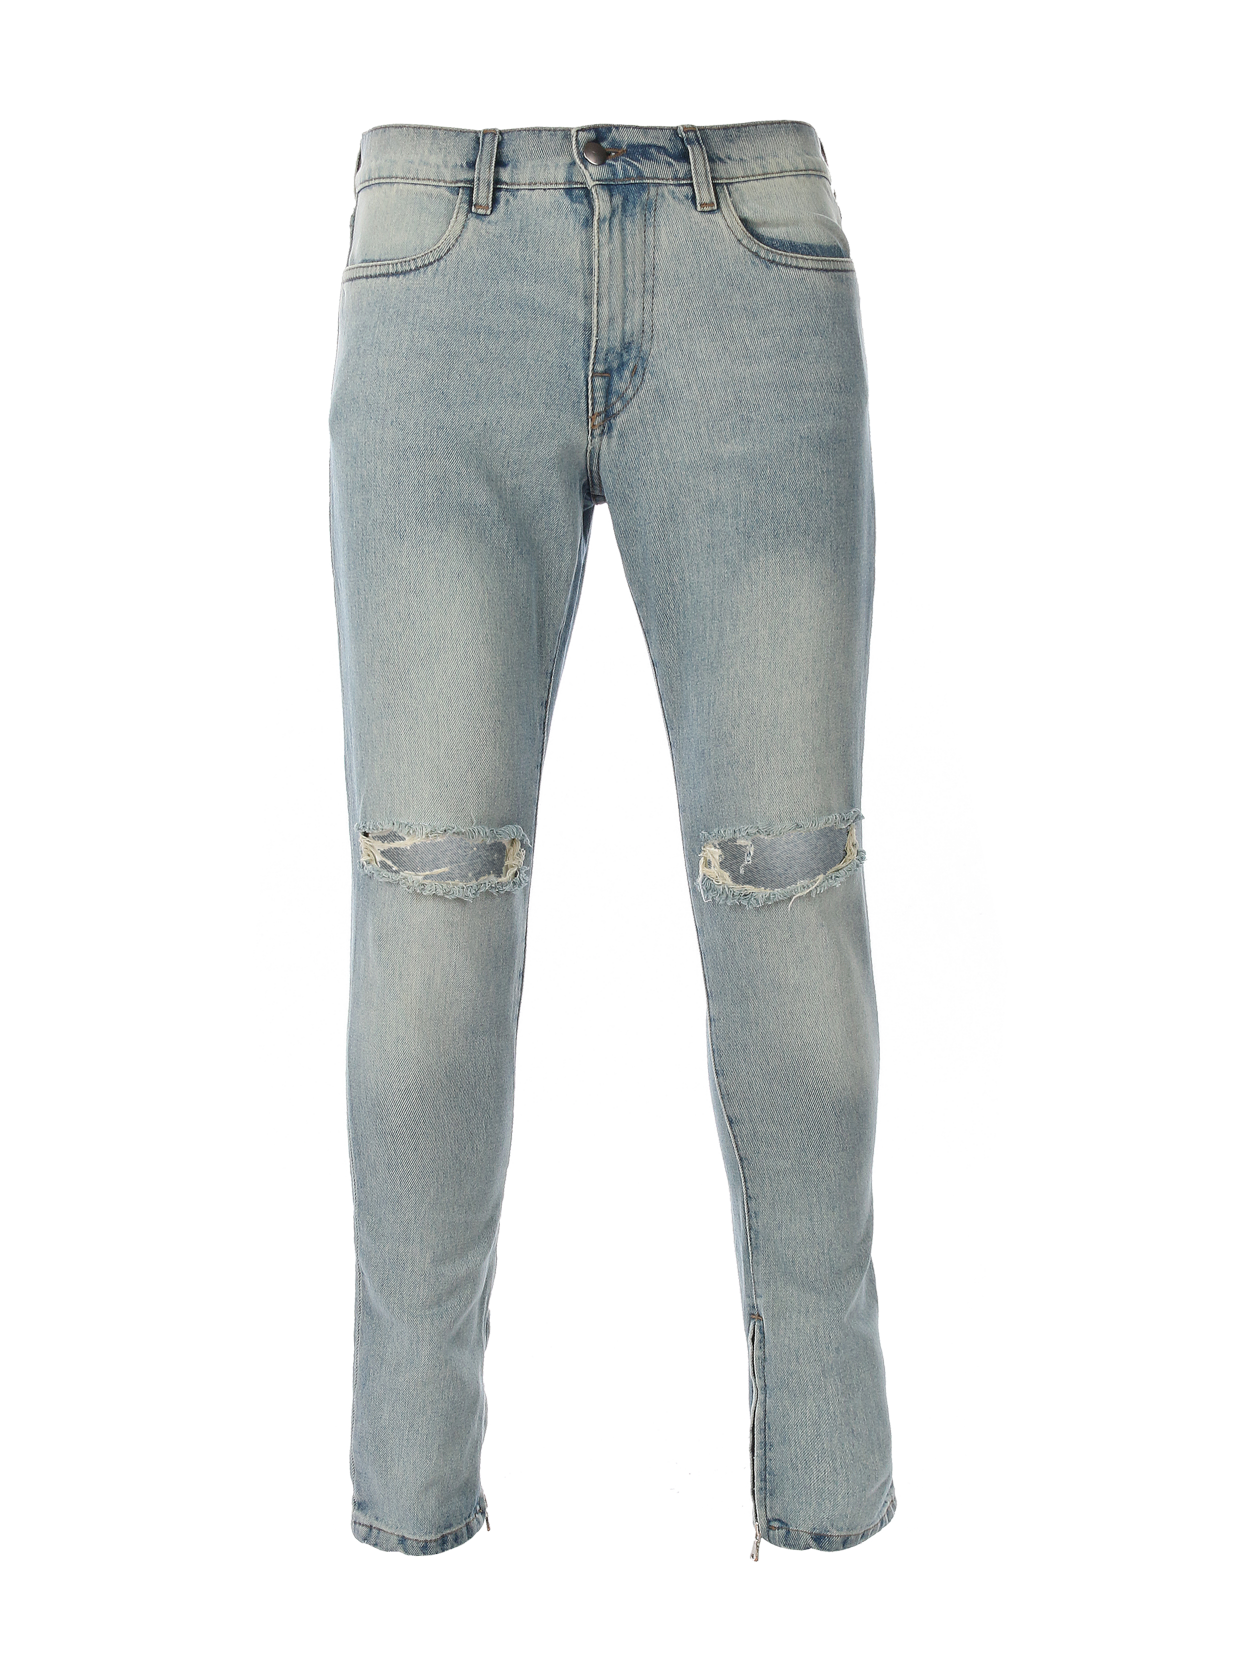 Mens jeans 13Mens jeans Capsule 13 by Black Star Wear. Slim fit, regular waist, front and back pockets, button and zipper, holes on knees. Small red label 13 on the back. Light blue washed denim.<br><br>size: 33/32 (L)<br>color: Blue<br>gender: male